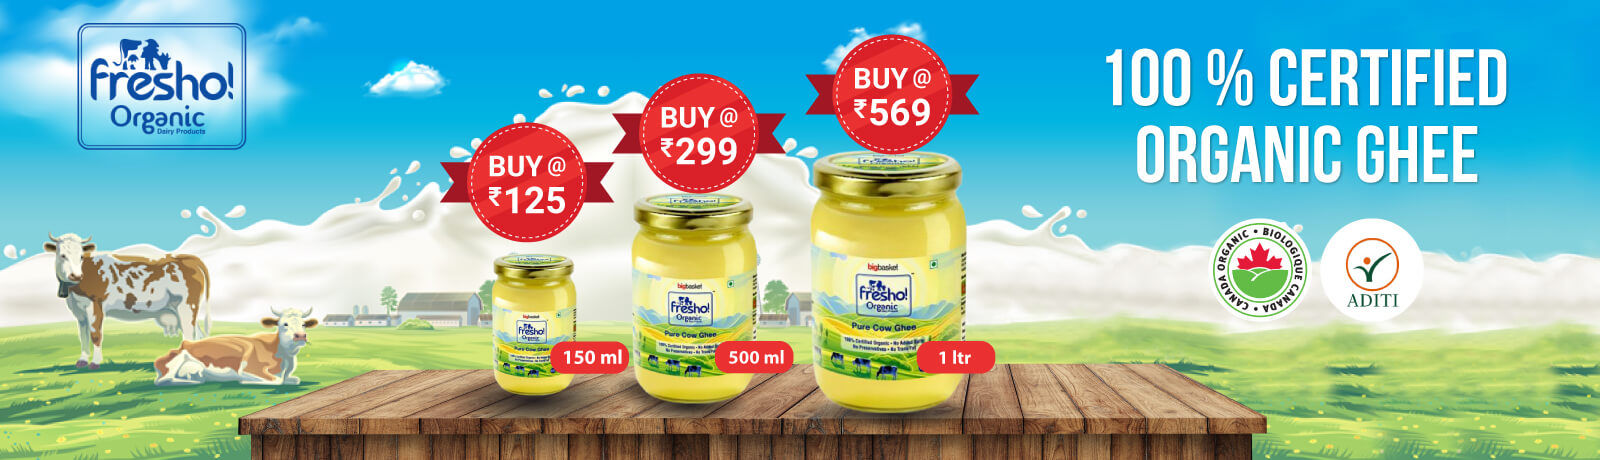 100% CERTIFIED ORGANIC GHEE @569 FOR 1 Ltr